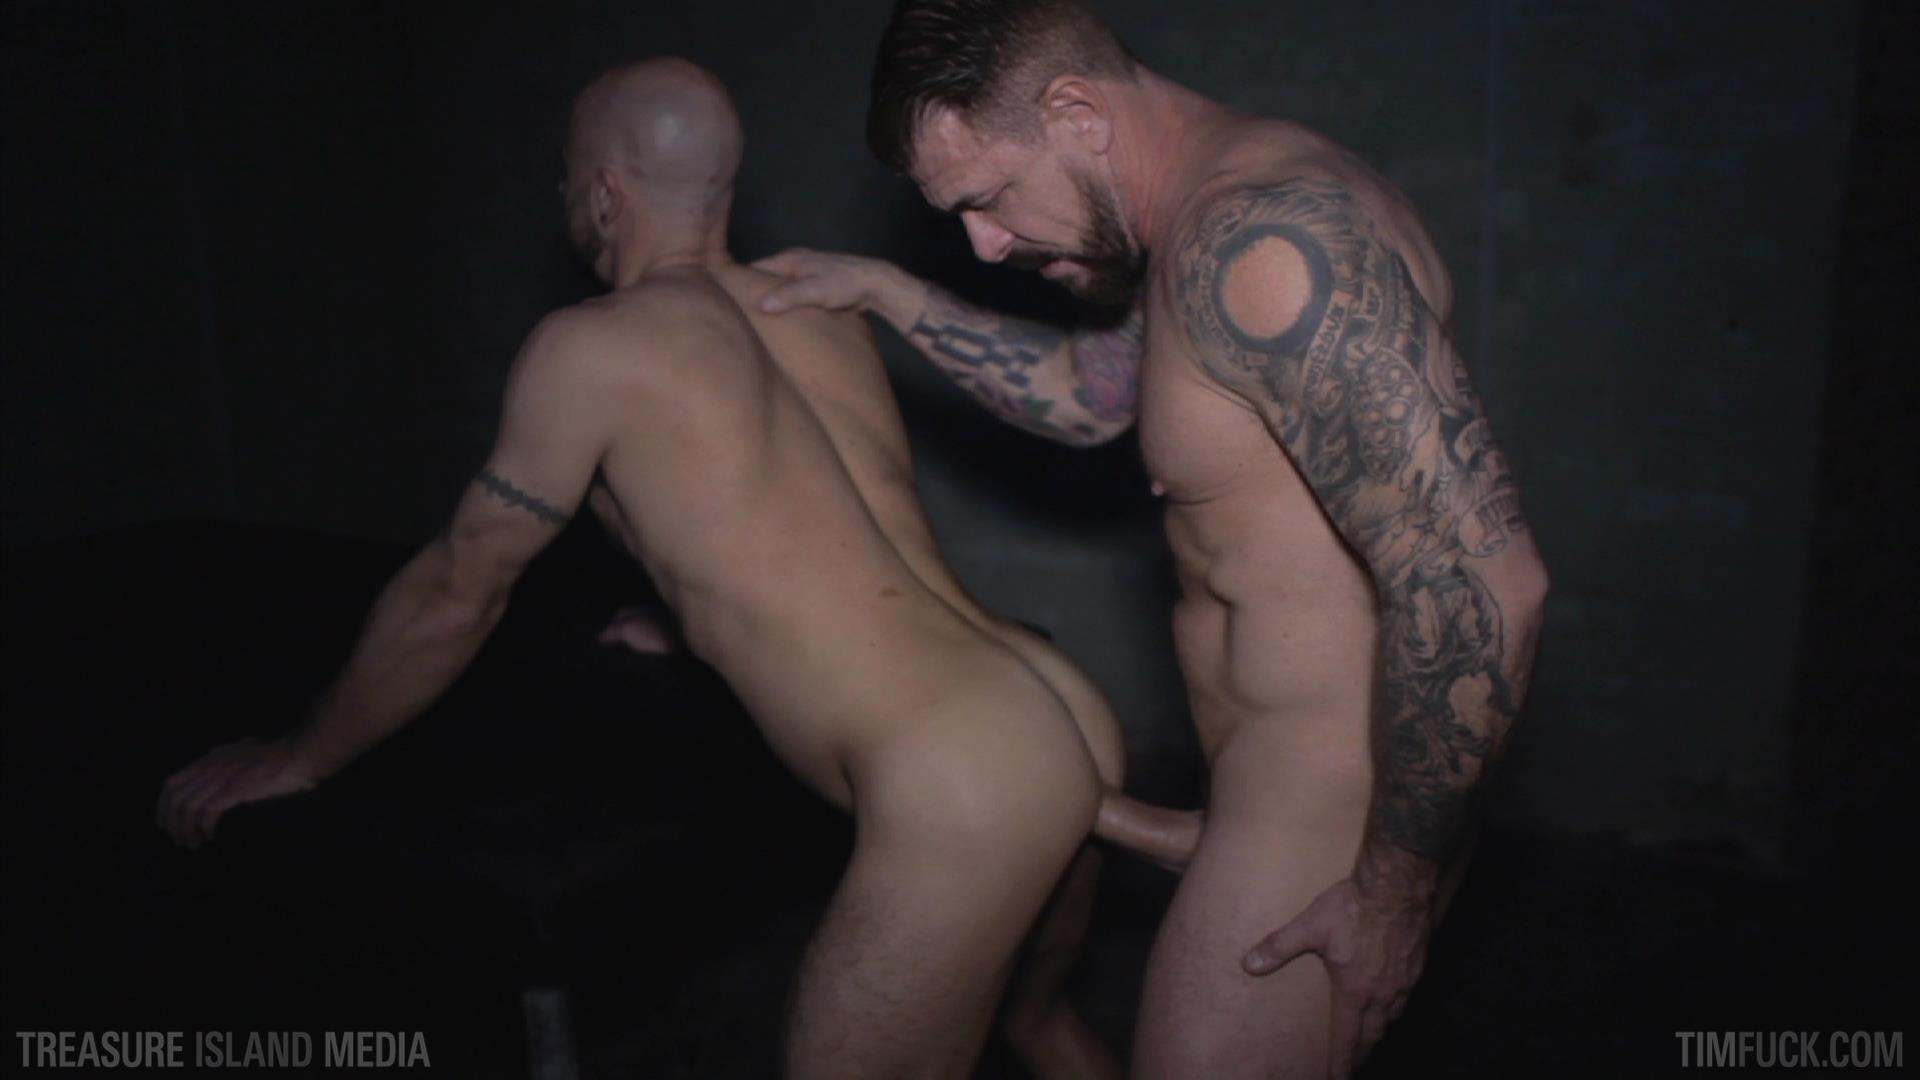 Treasure Island Media TimFuck Rocco Steele and Ben Statham Bareback Amateur Gay Porn 04 Treasure Island Media: Rocco Steele and Ben Statham Bareback In A London Bathhouse